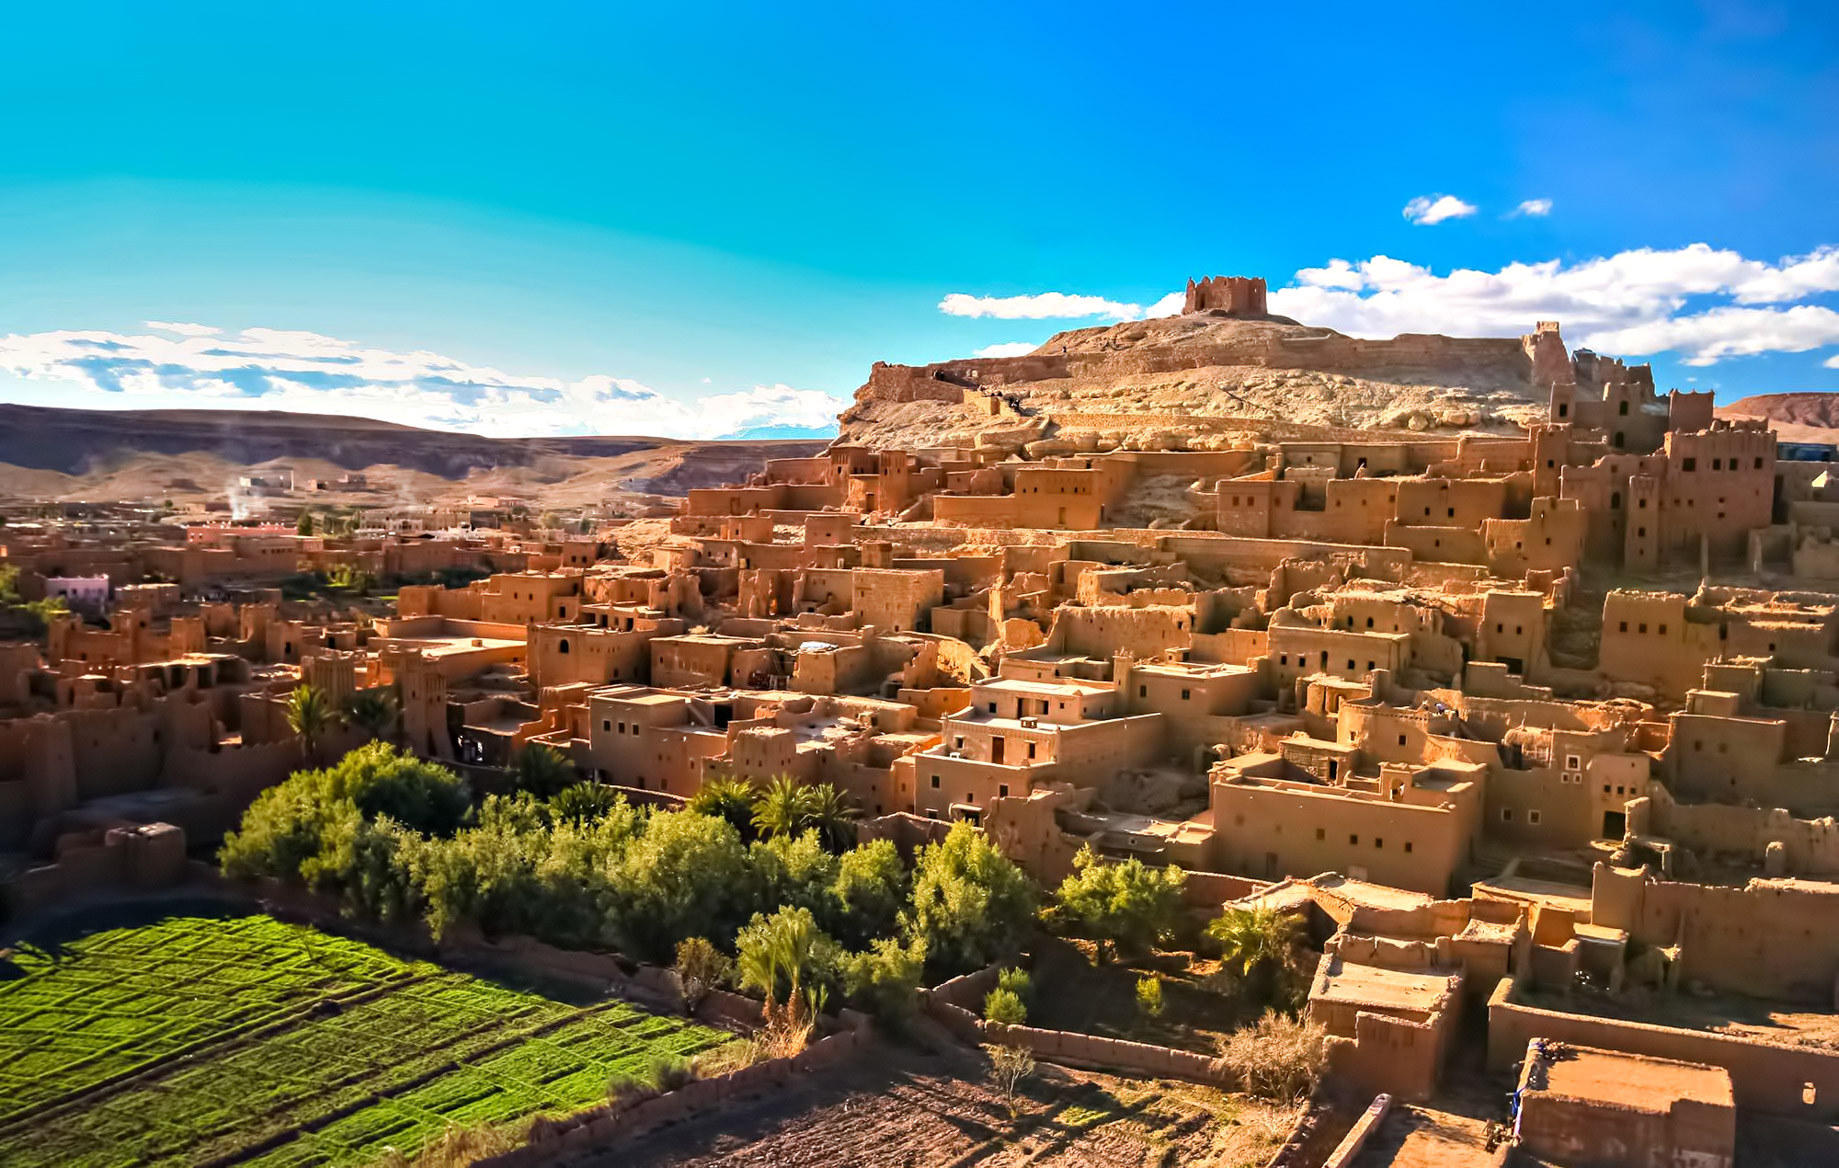 Morocco - Best Exotic Locations for Remote Workers to Consider a Second Home